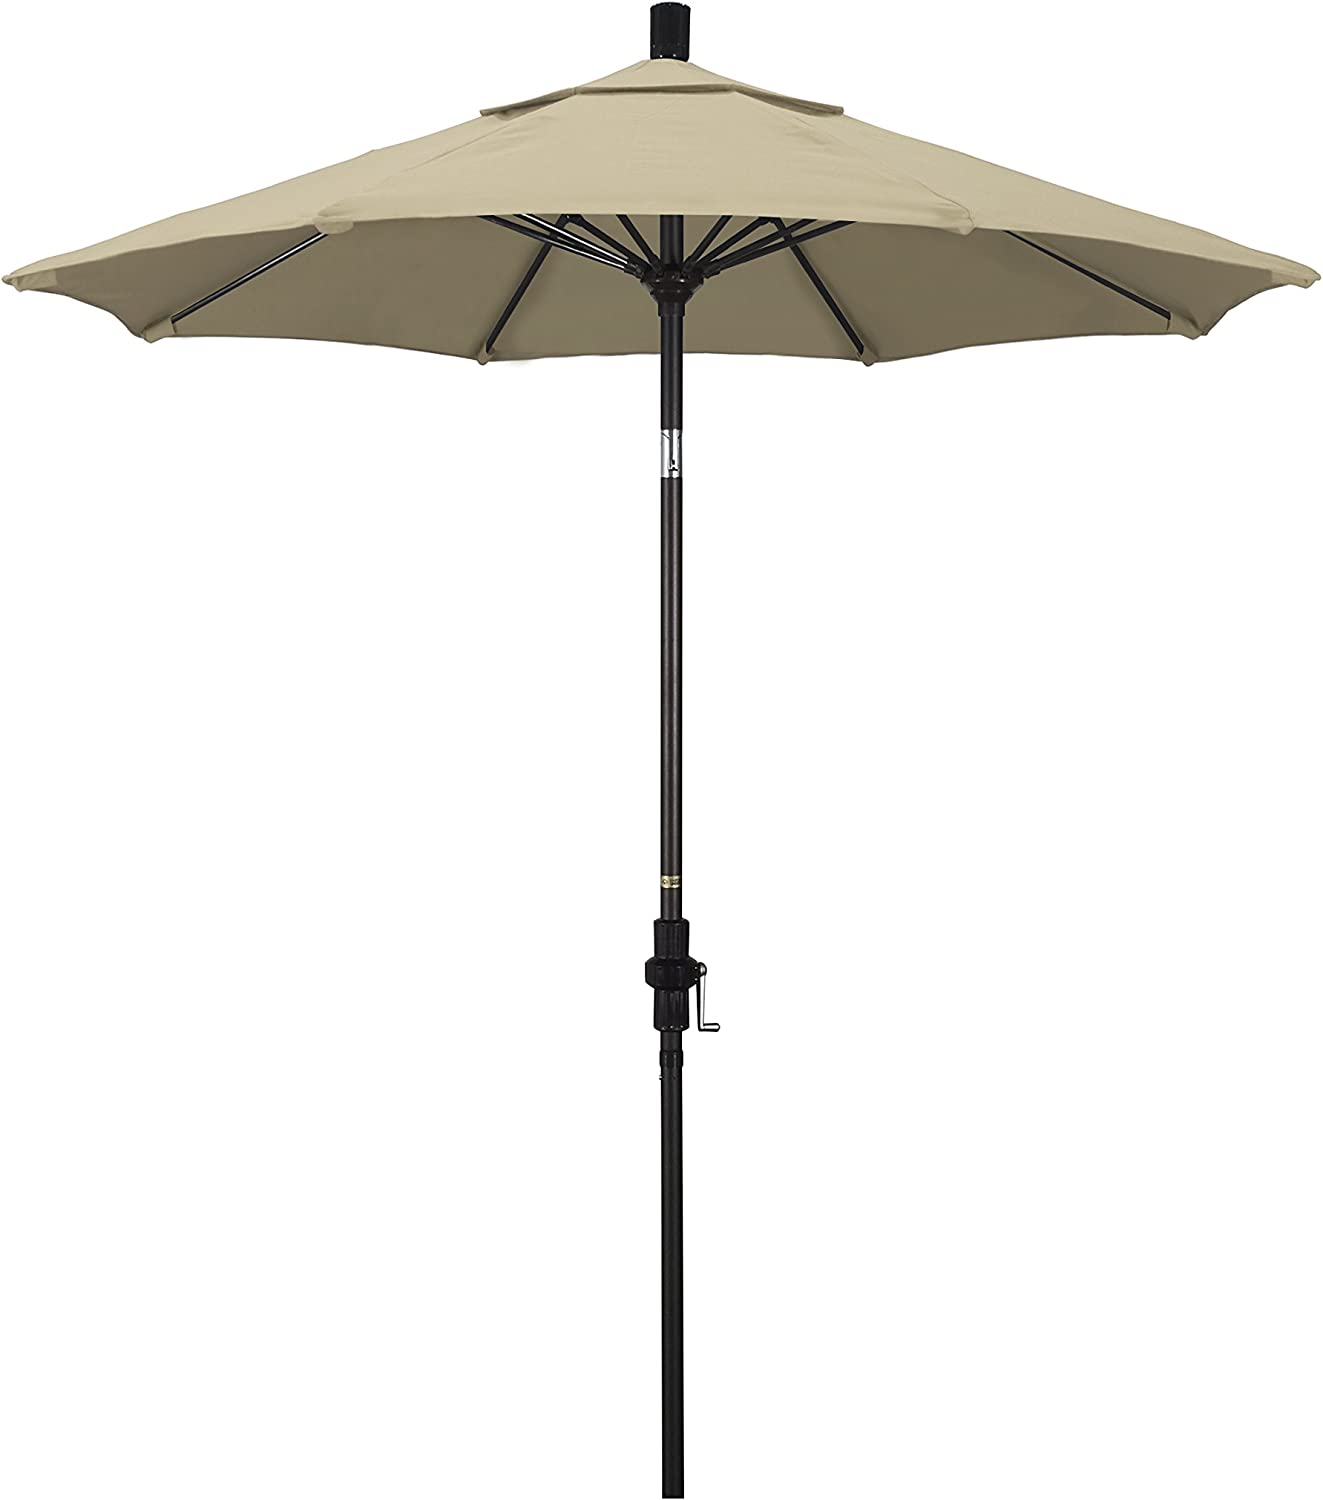 California Umbrella 7.5 Round Aluminum Pole Fiberglass Rib Market Umbrella, Crank Lift, Collar Tilt, Bronze Pole, Beige